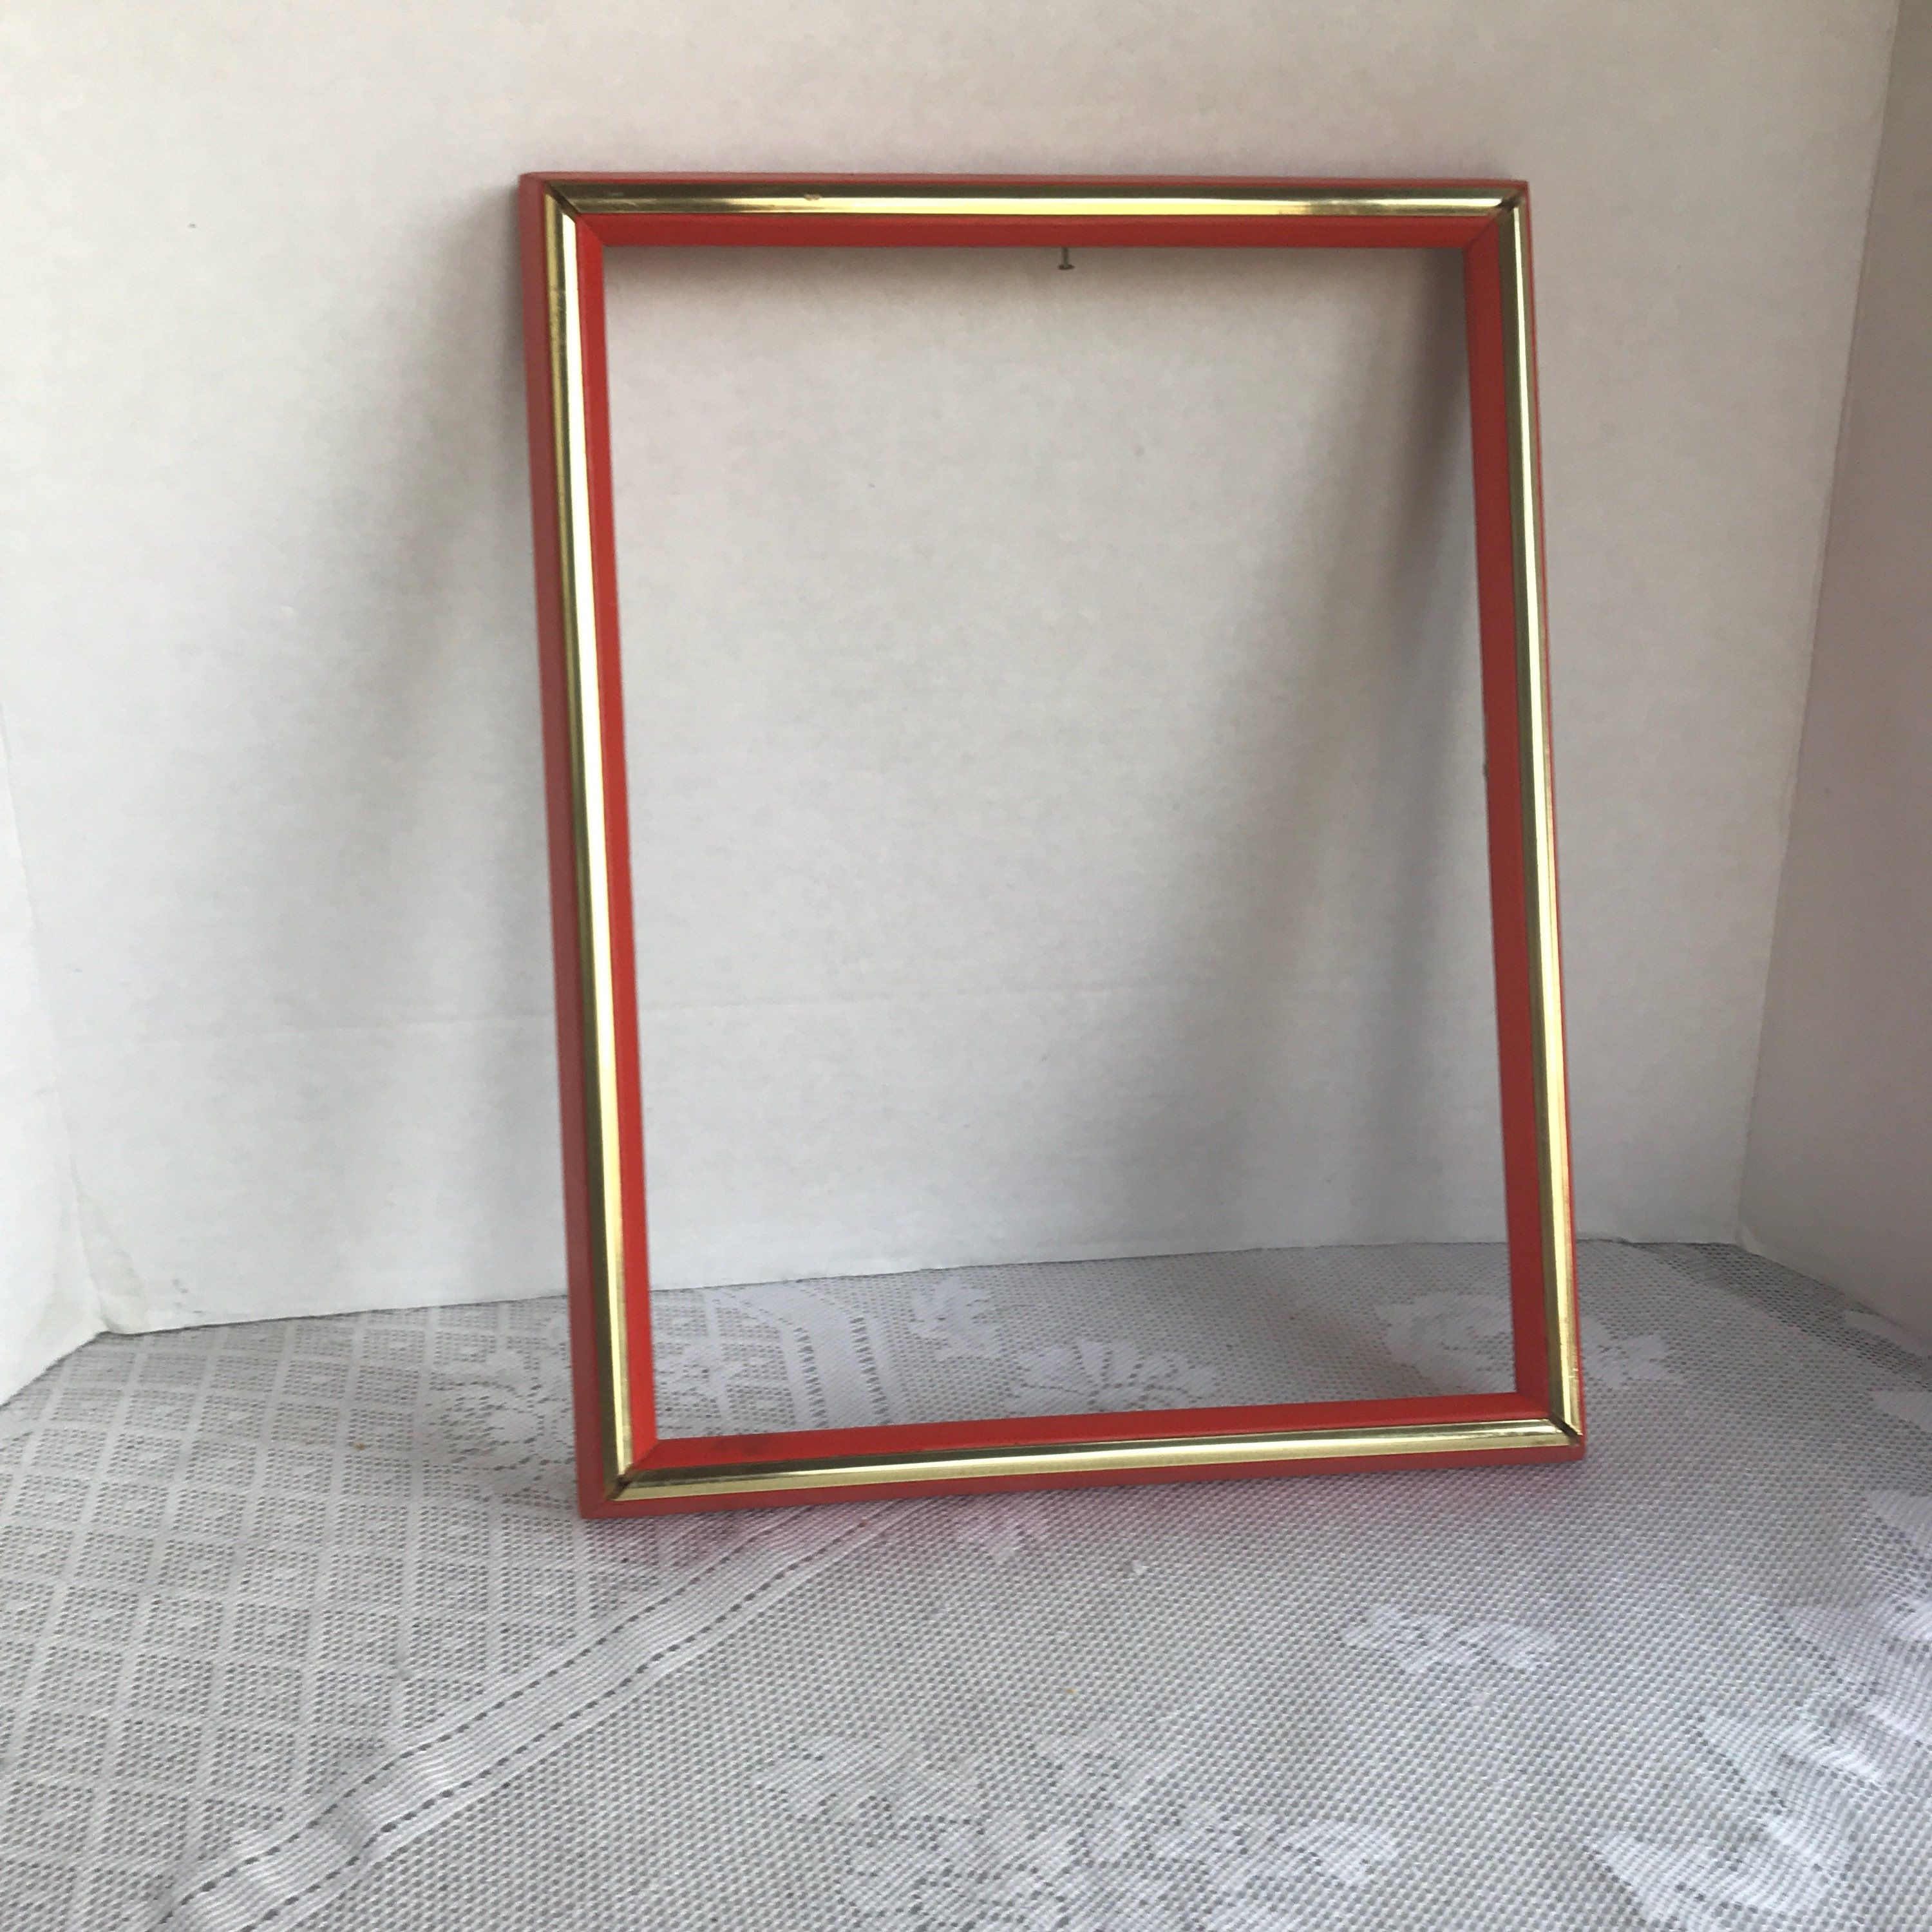 Vintage 9 X 12 Inch Wood Picture Frame Red And Gold Wooden Frame Made In Mexico By Vintagepoetic On Etsy Wood Picture Frames Picture Frames Wooden Picture Frames